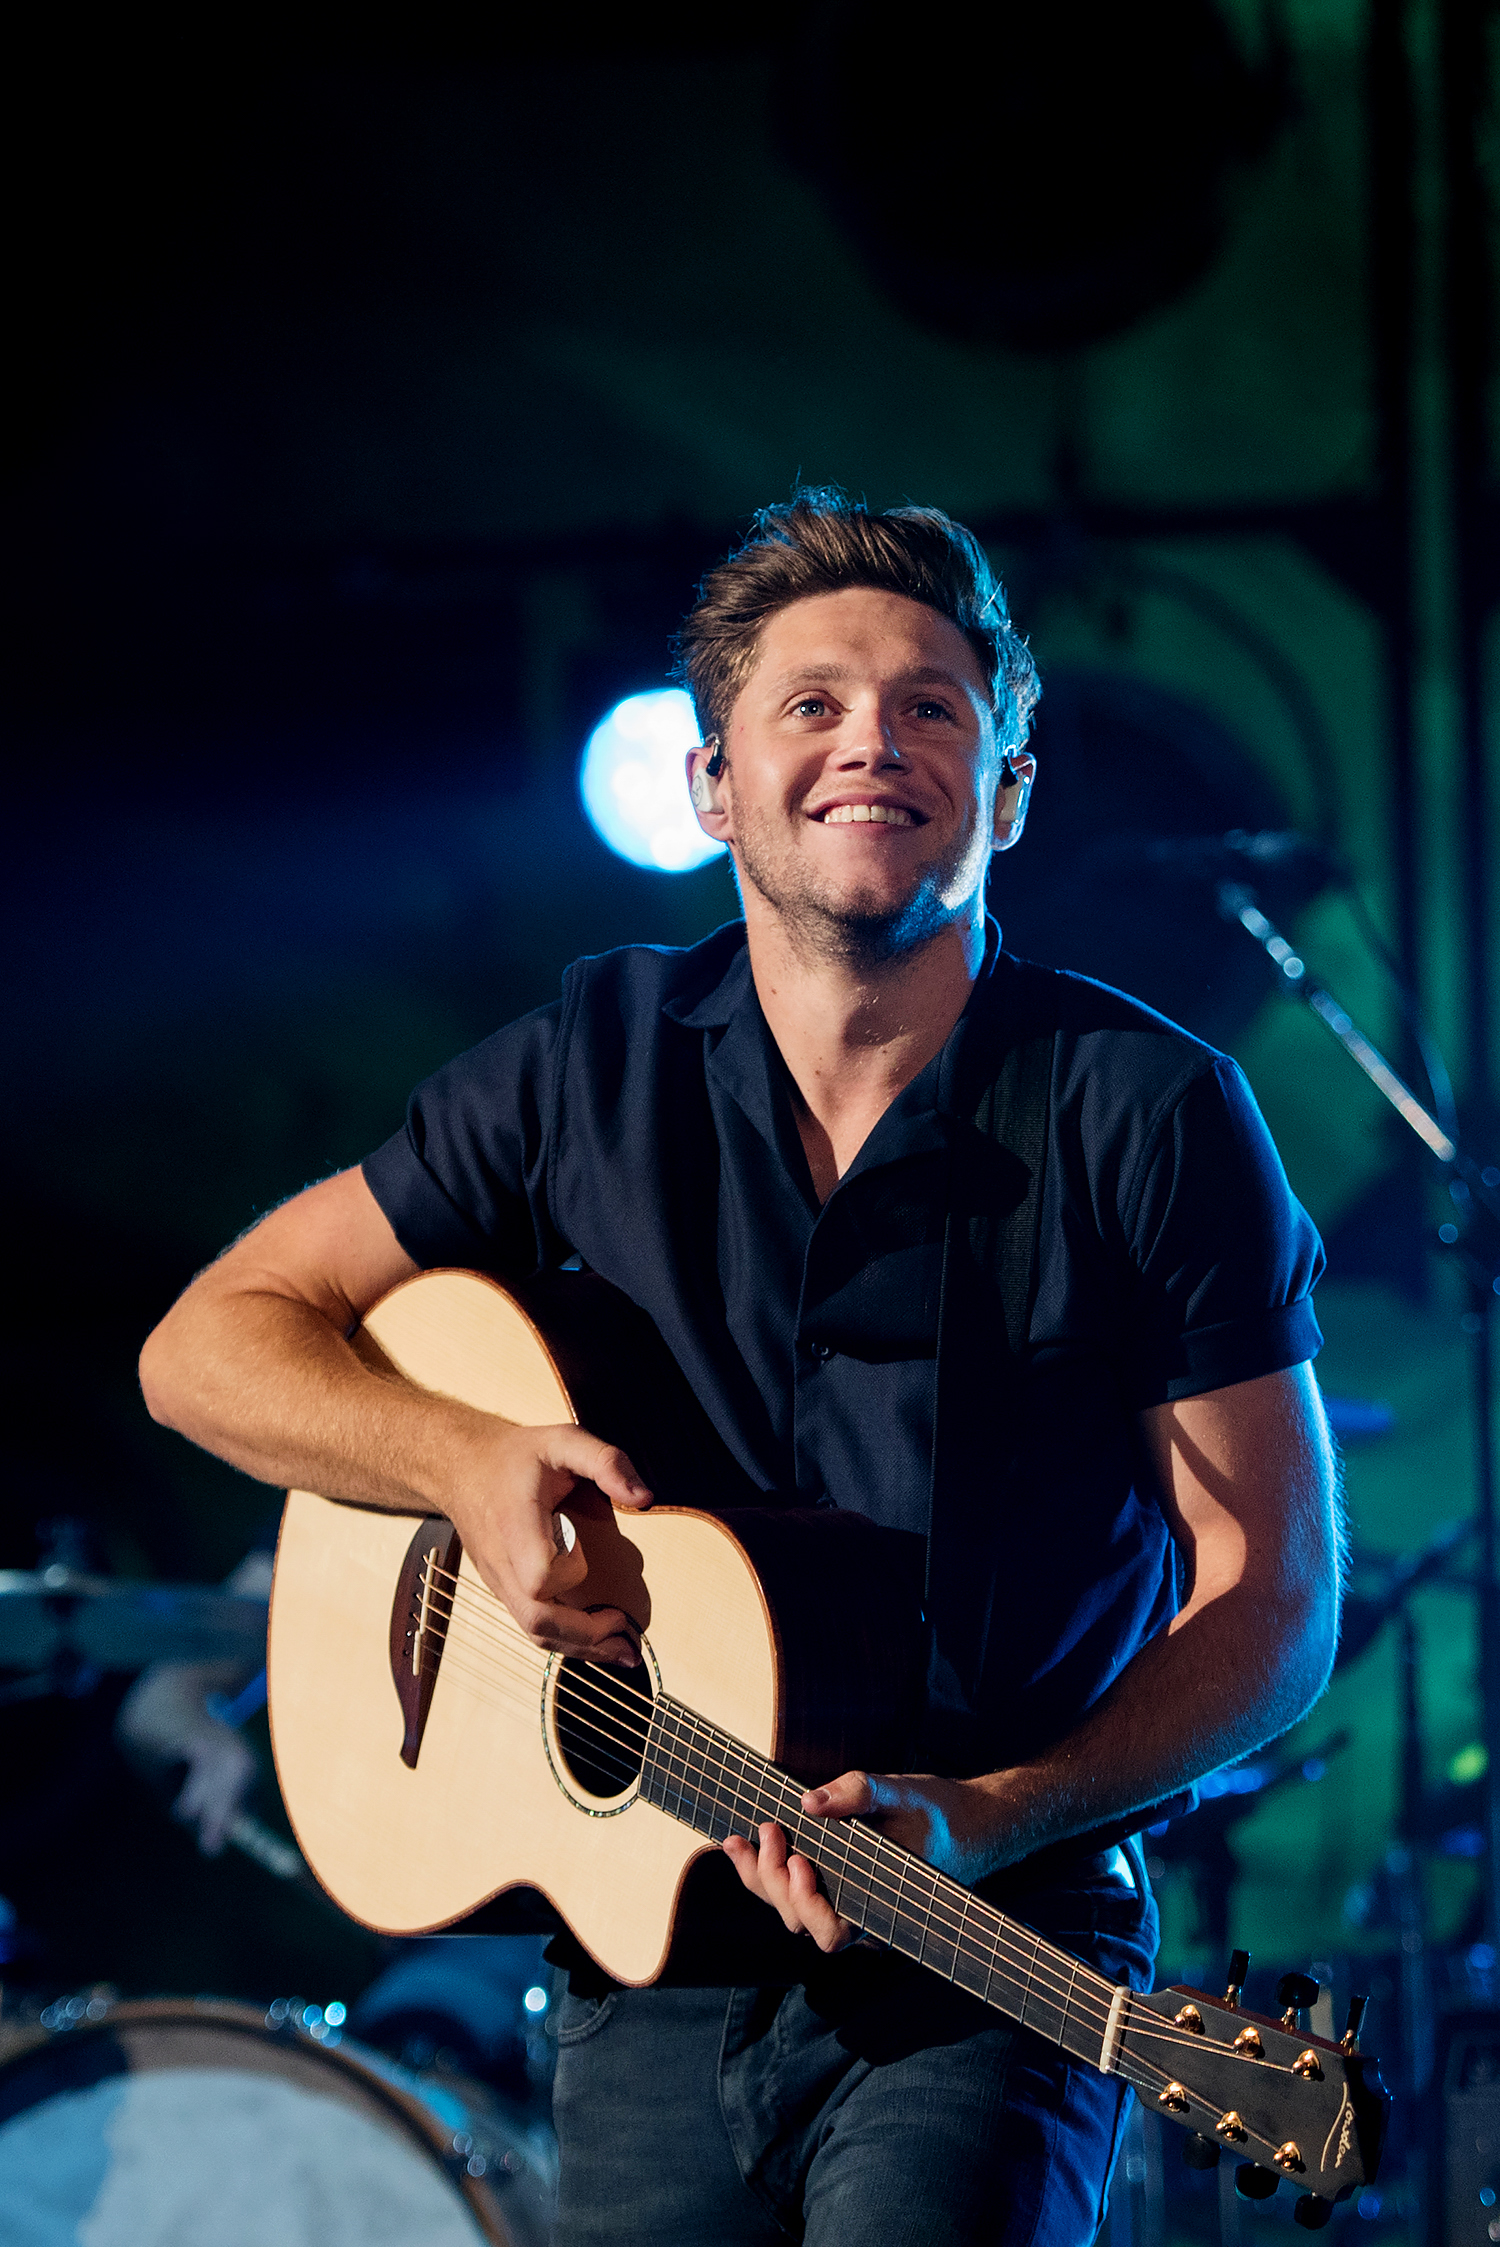 NiallHoranRedRocks8202018 (14 of 32).jpg